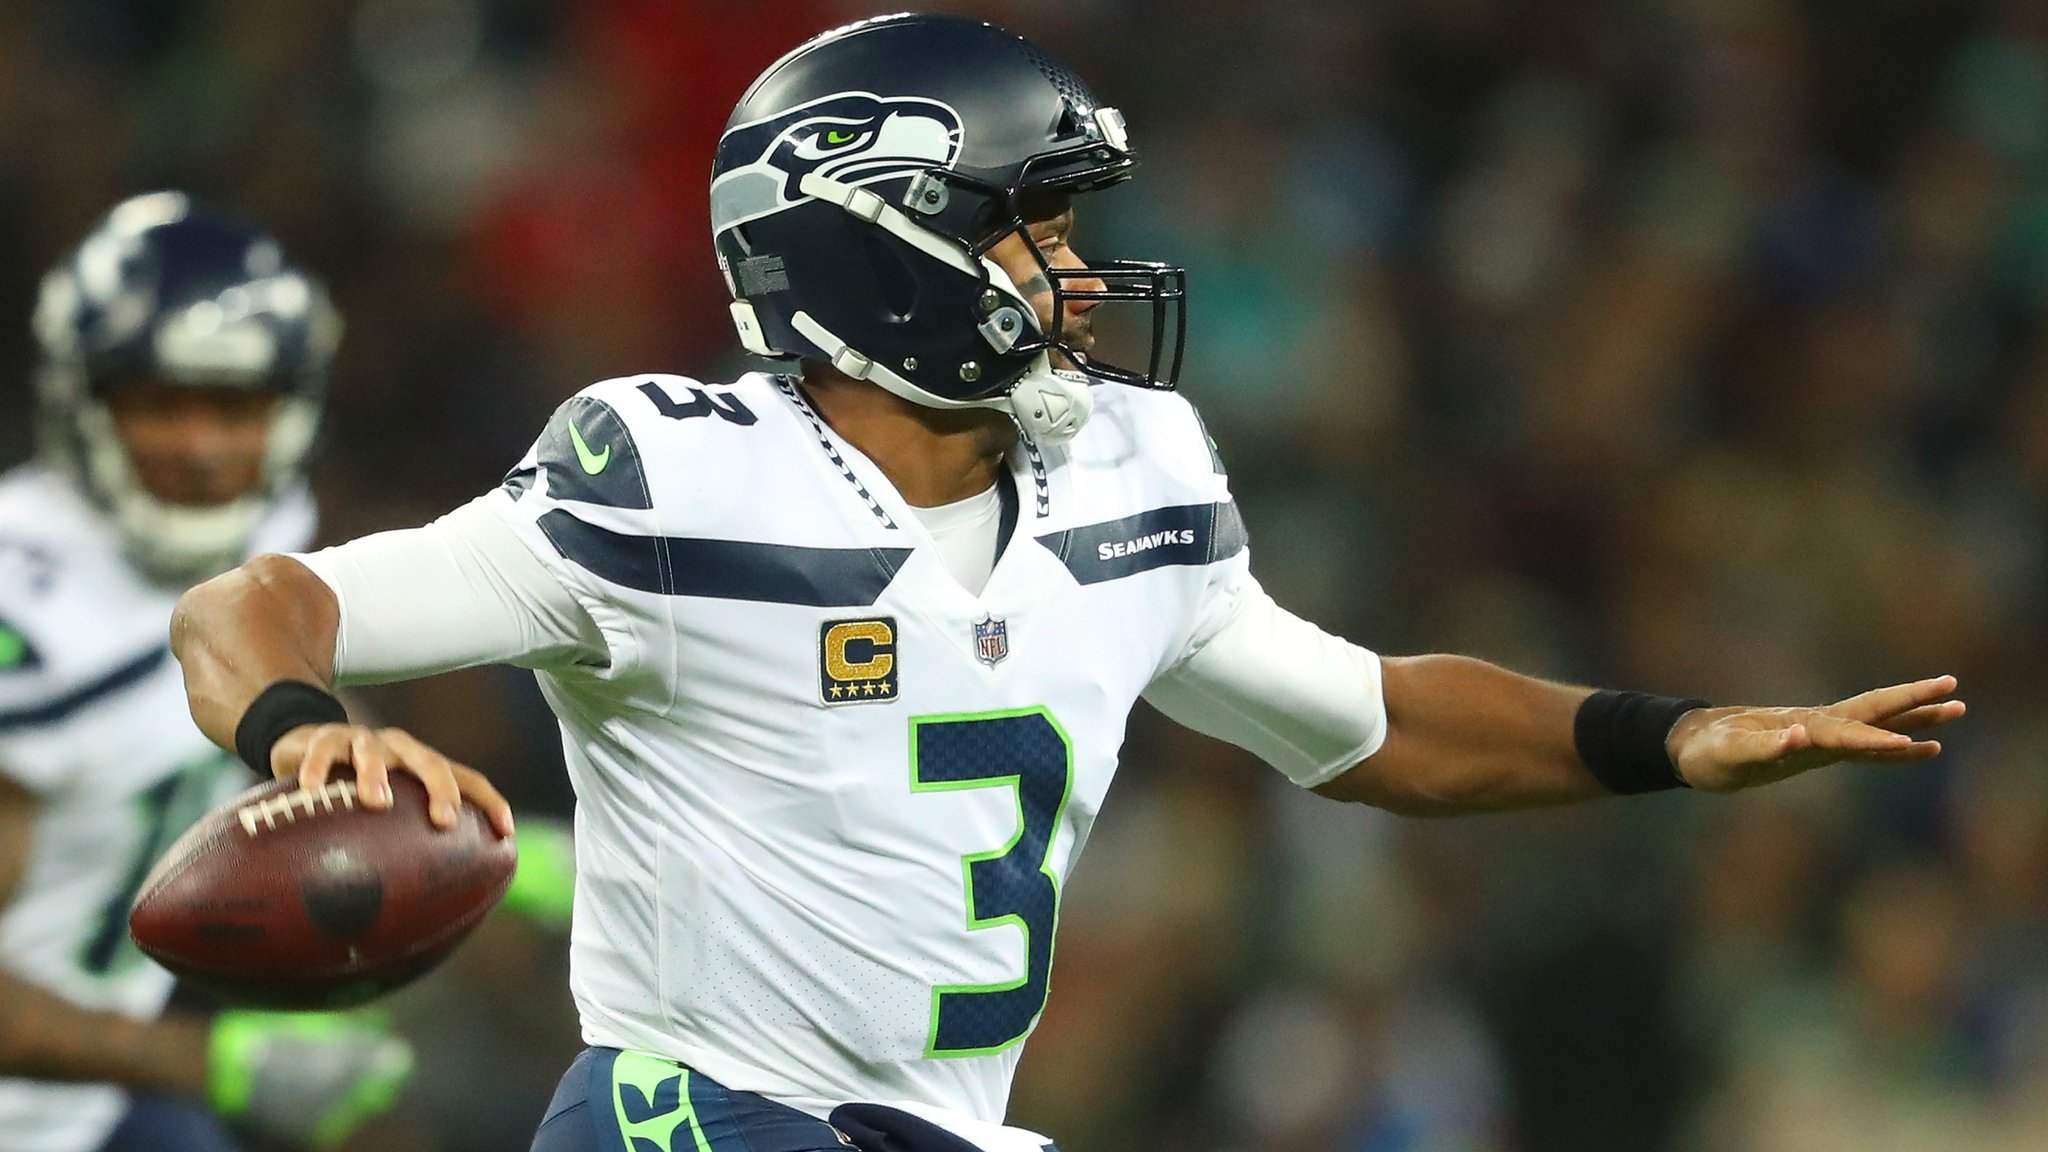 Seattle Seahawks beat Oakland Raiders 27-3 at Wembley